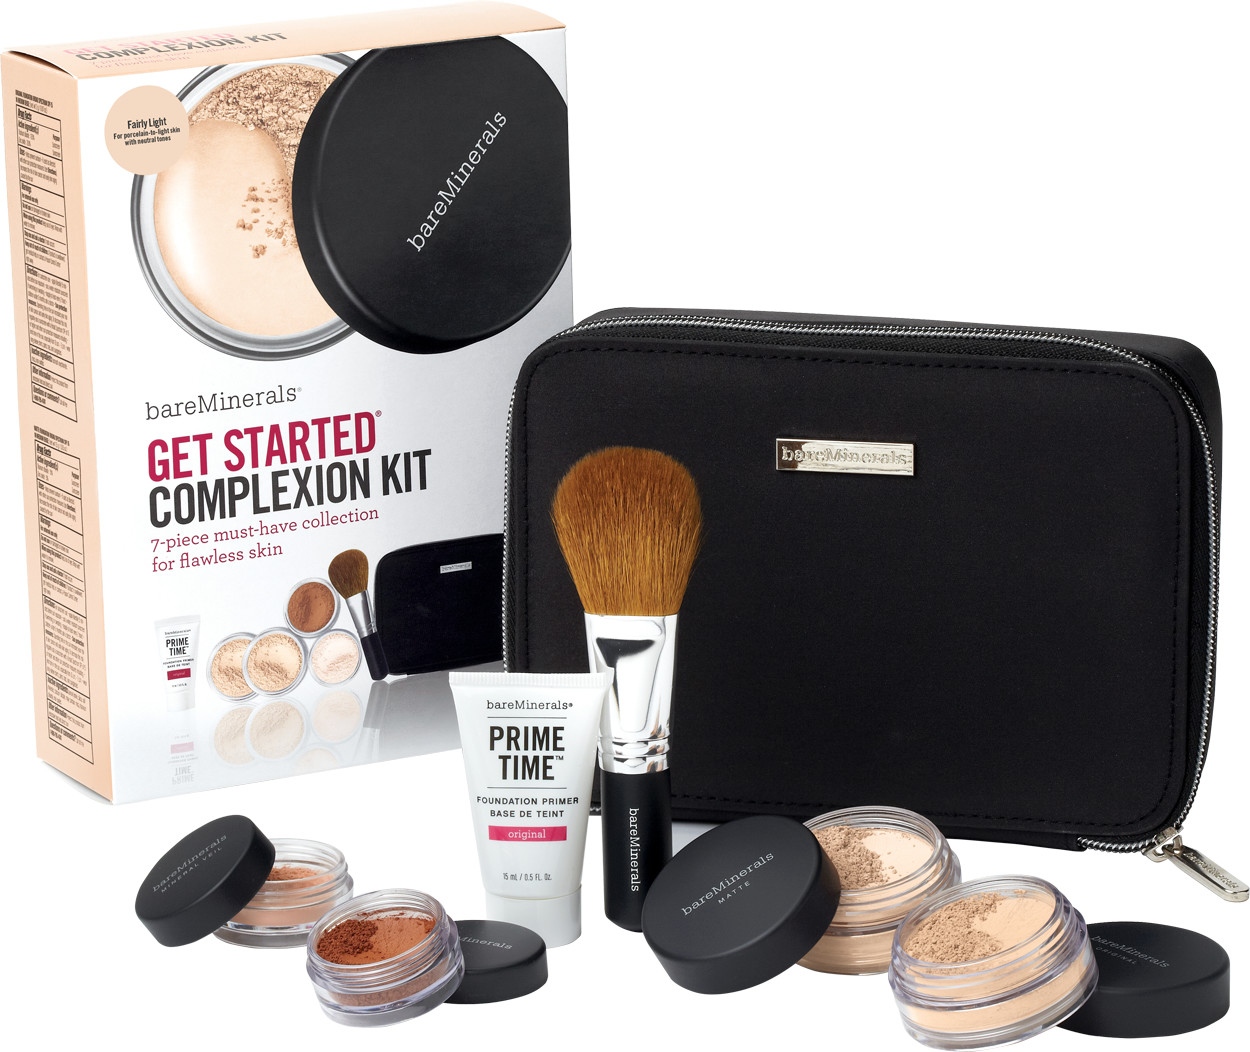 bareminerals_get_started_complexion_kit_fairly_light_1